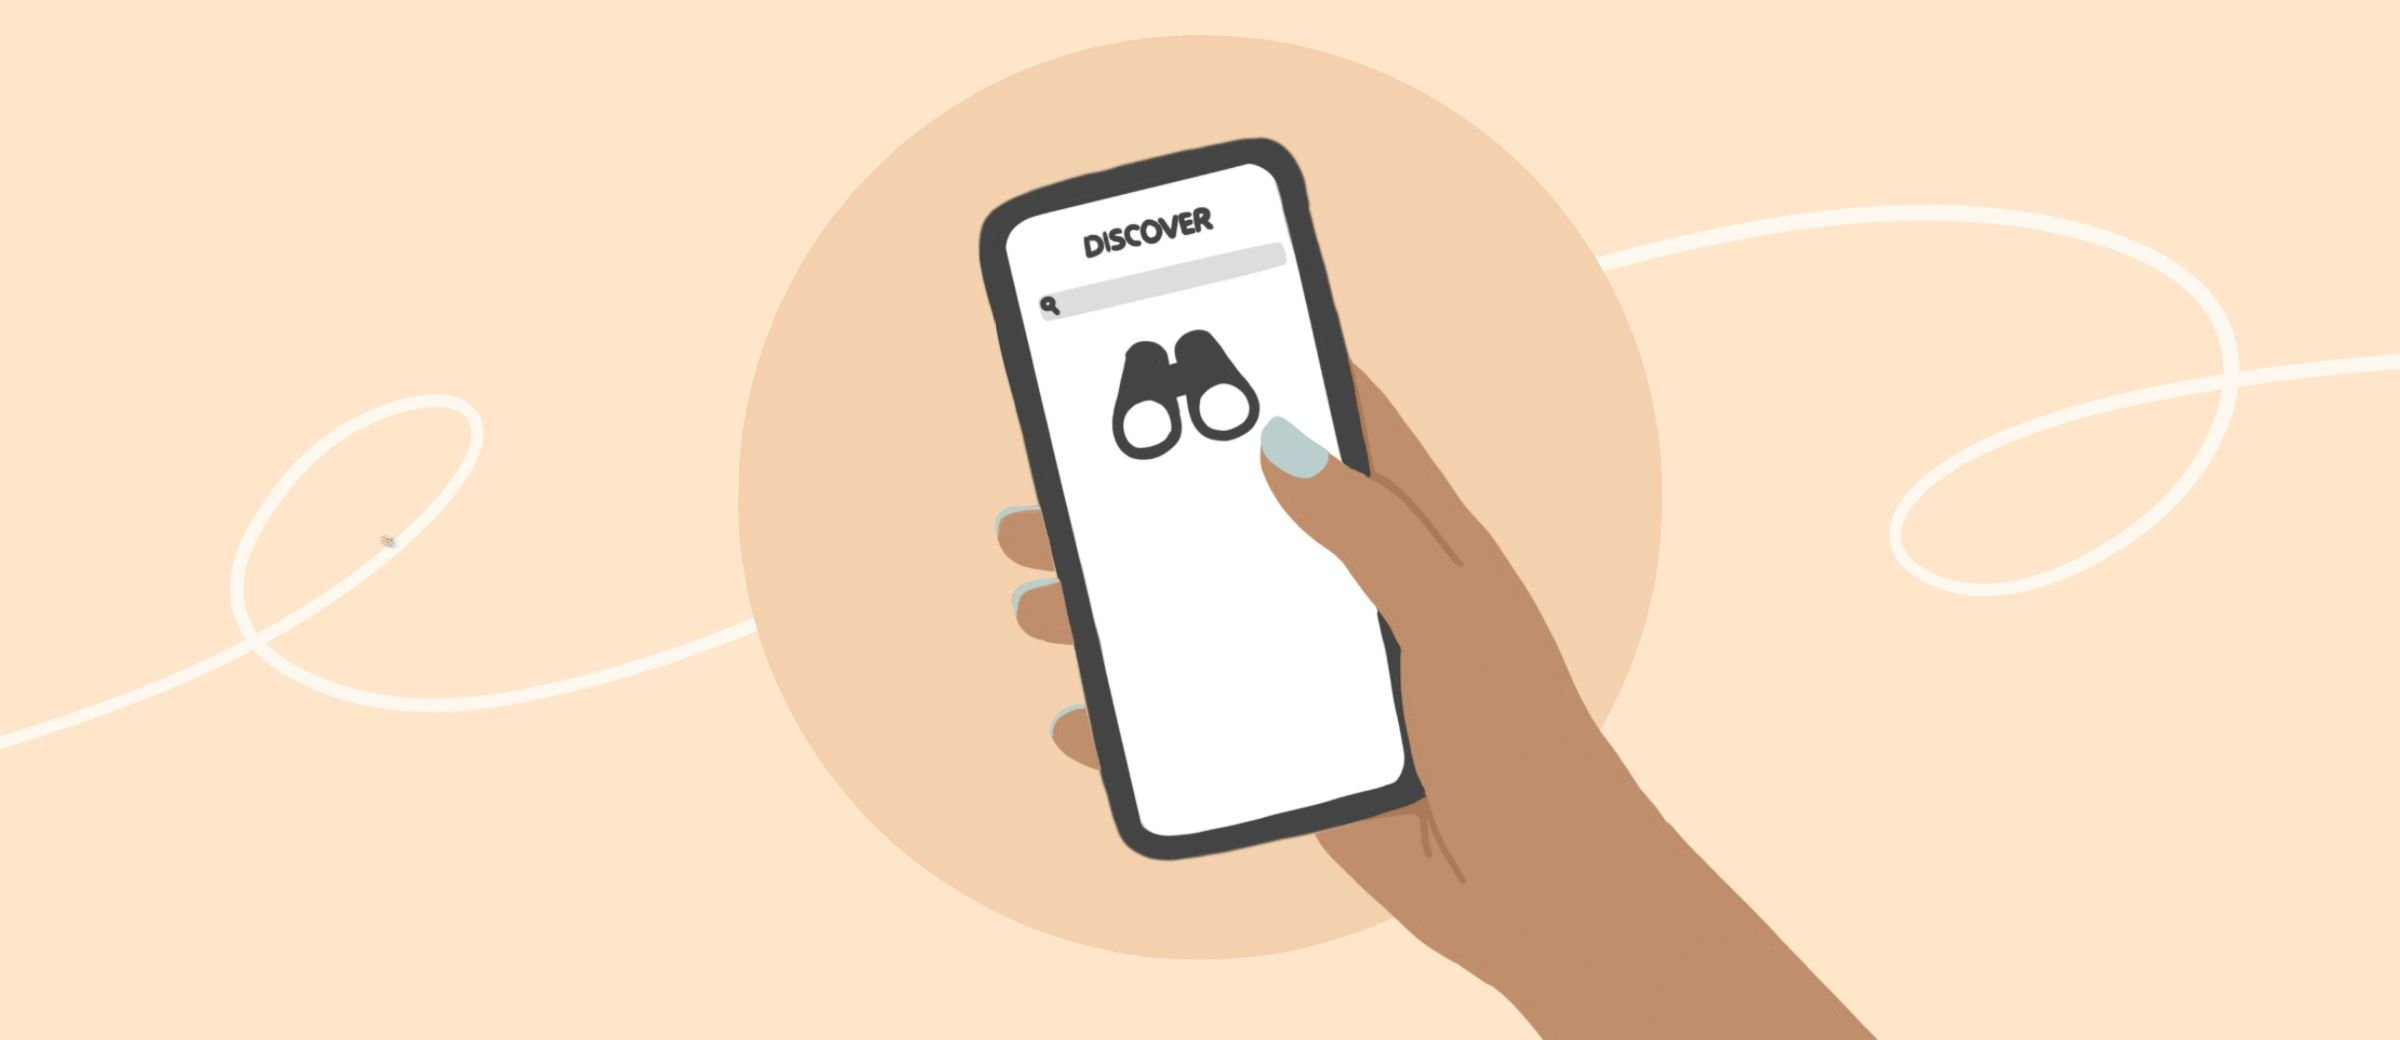 Read about Content Discovery: How to Use PLANOLY's Discover Feature, on PLANOLY